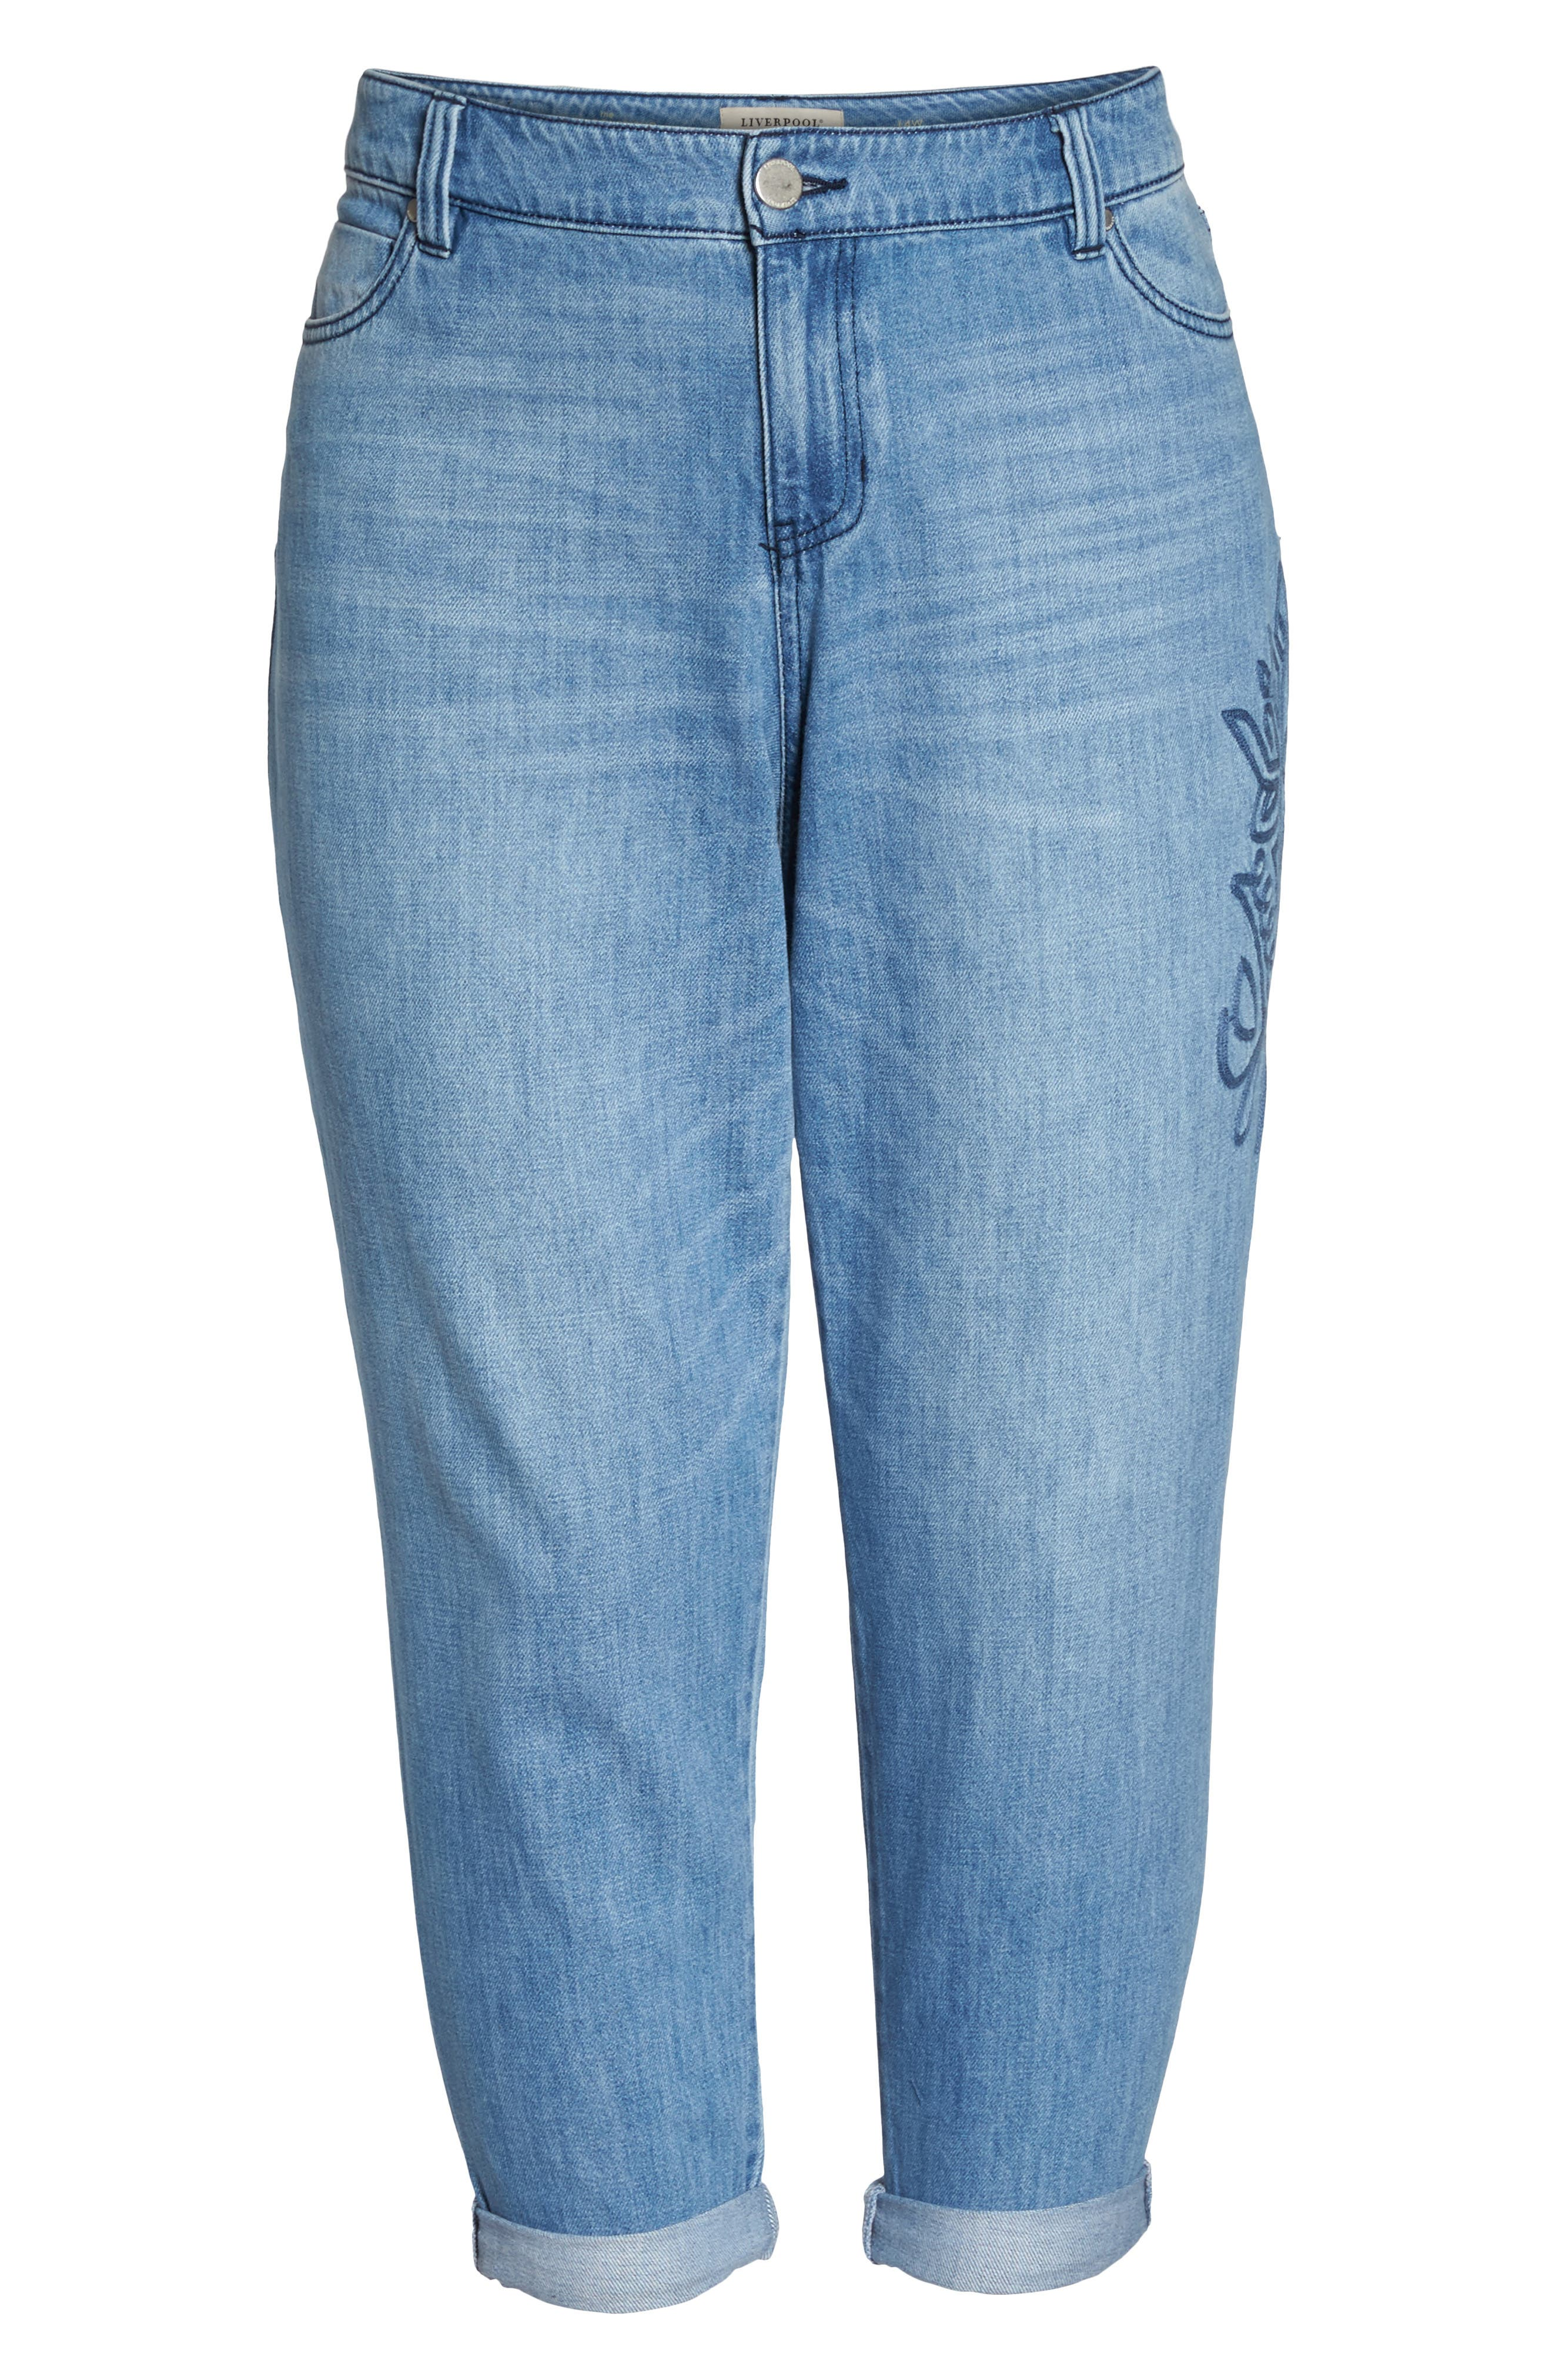 Cameron Crop Boyfriend Jeans,                             Alternate thumbnail 7, color,